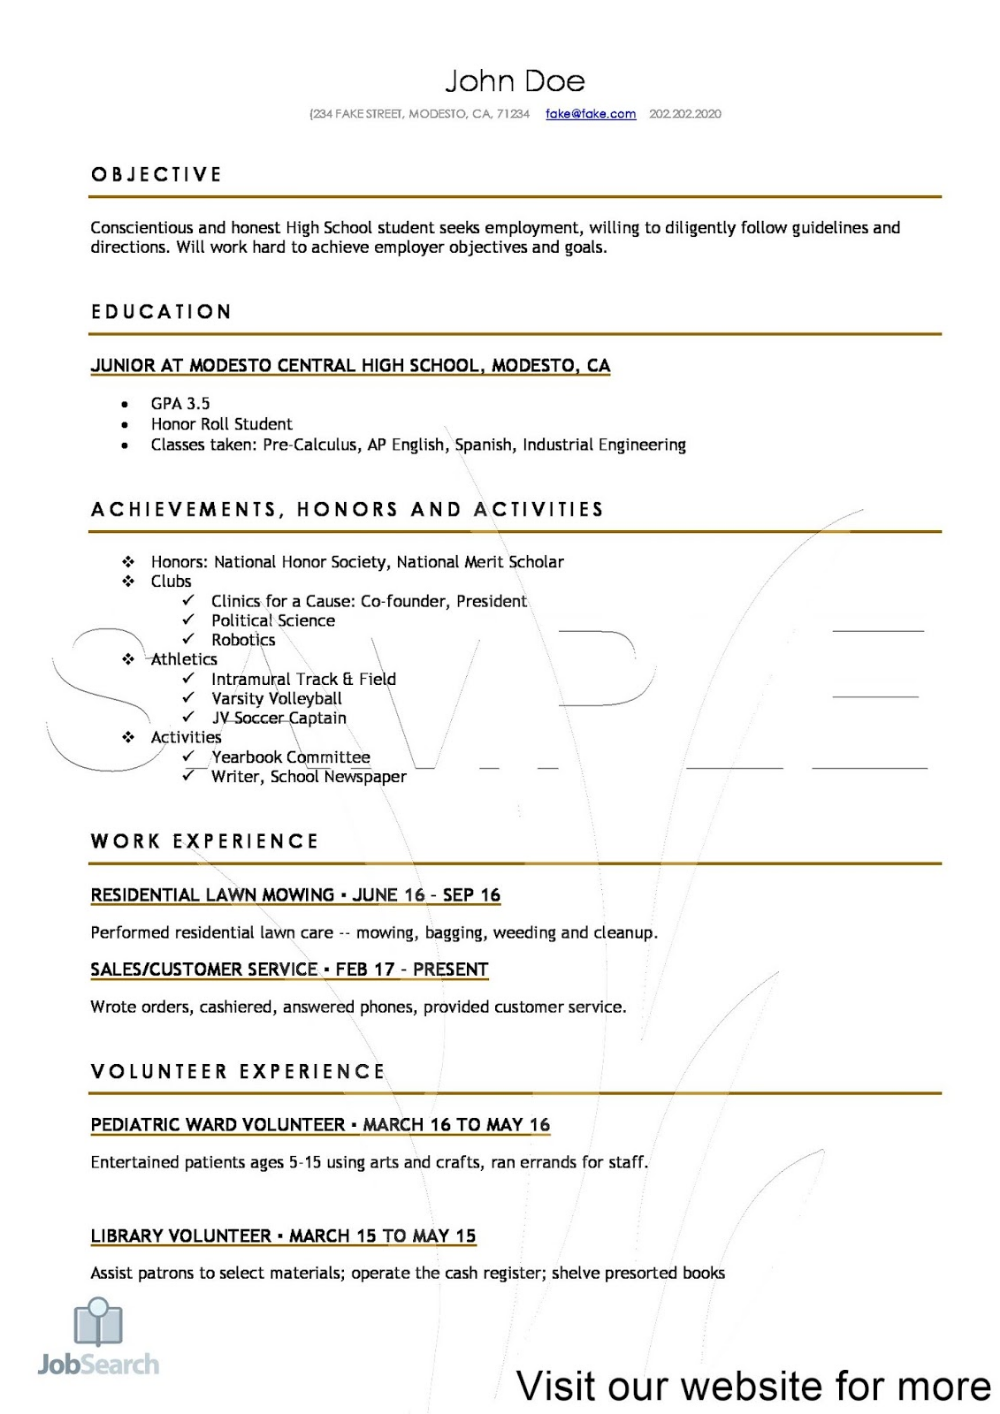 Resumes for High School Students 2020 Resume For Students